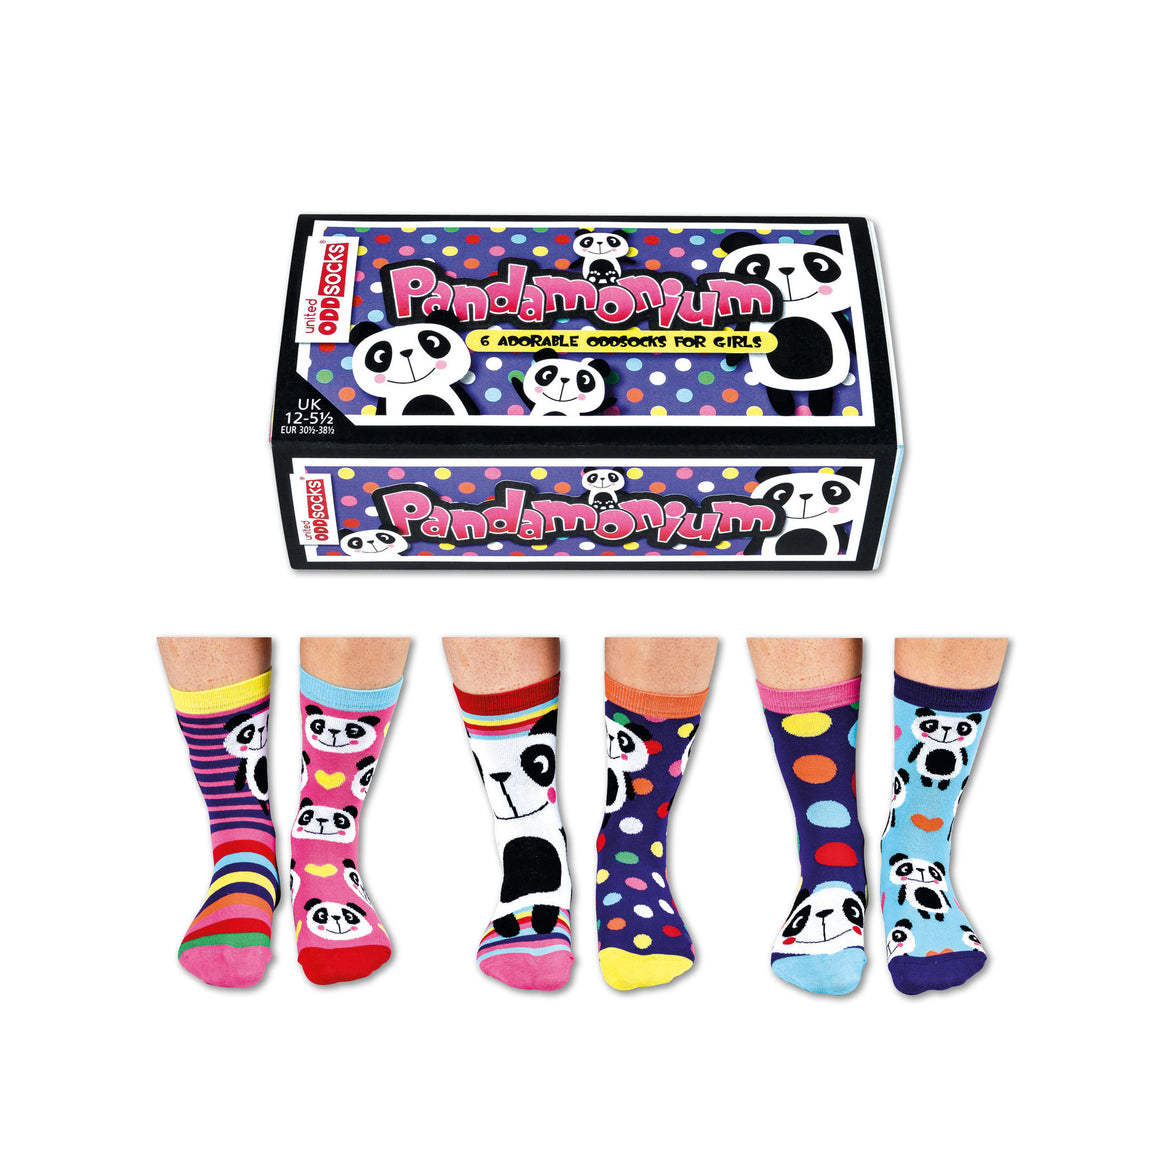 United Odd Socks Pandamonium Girls Gift Box